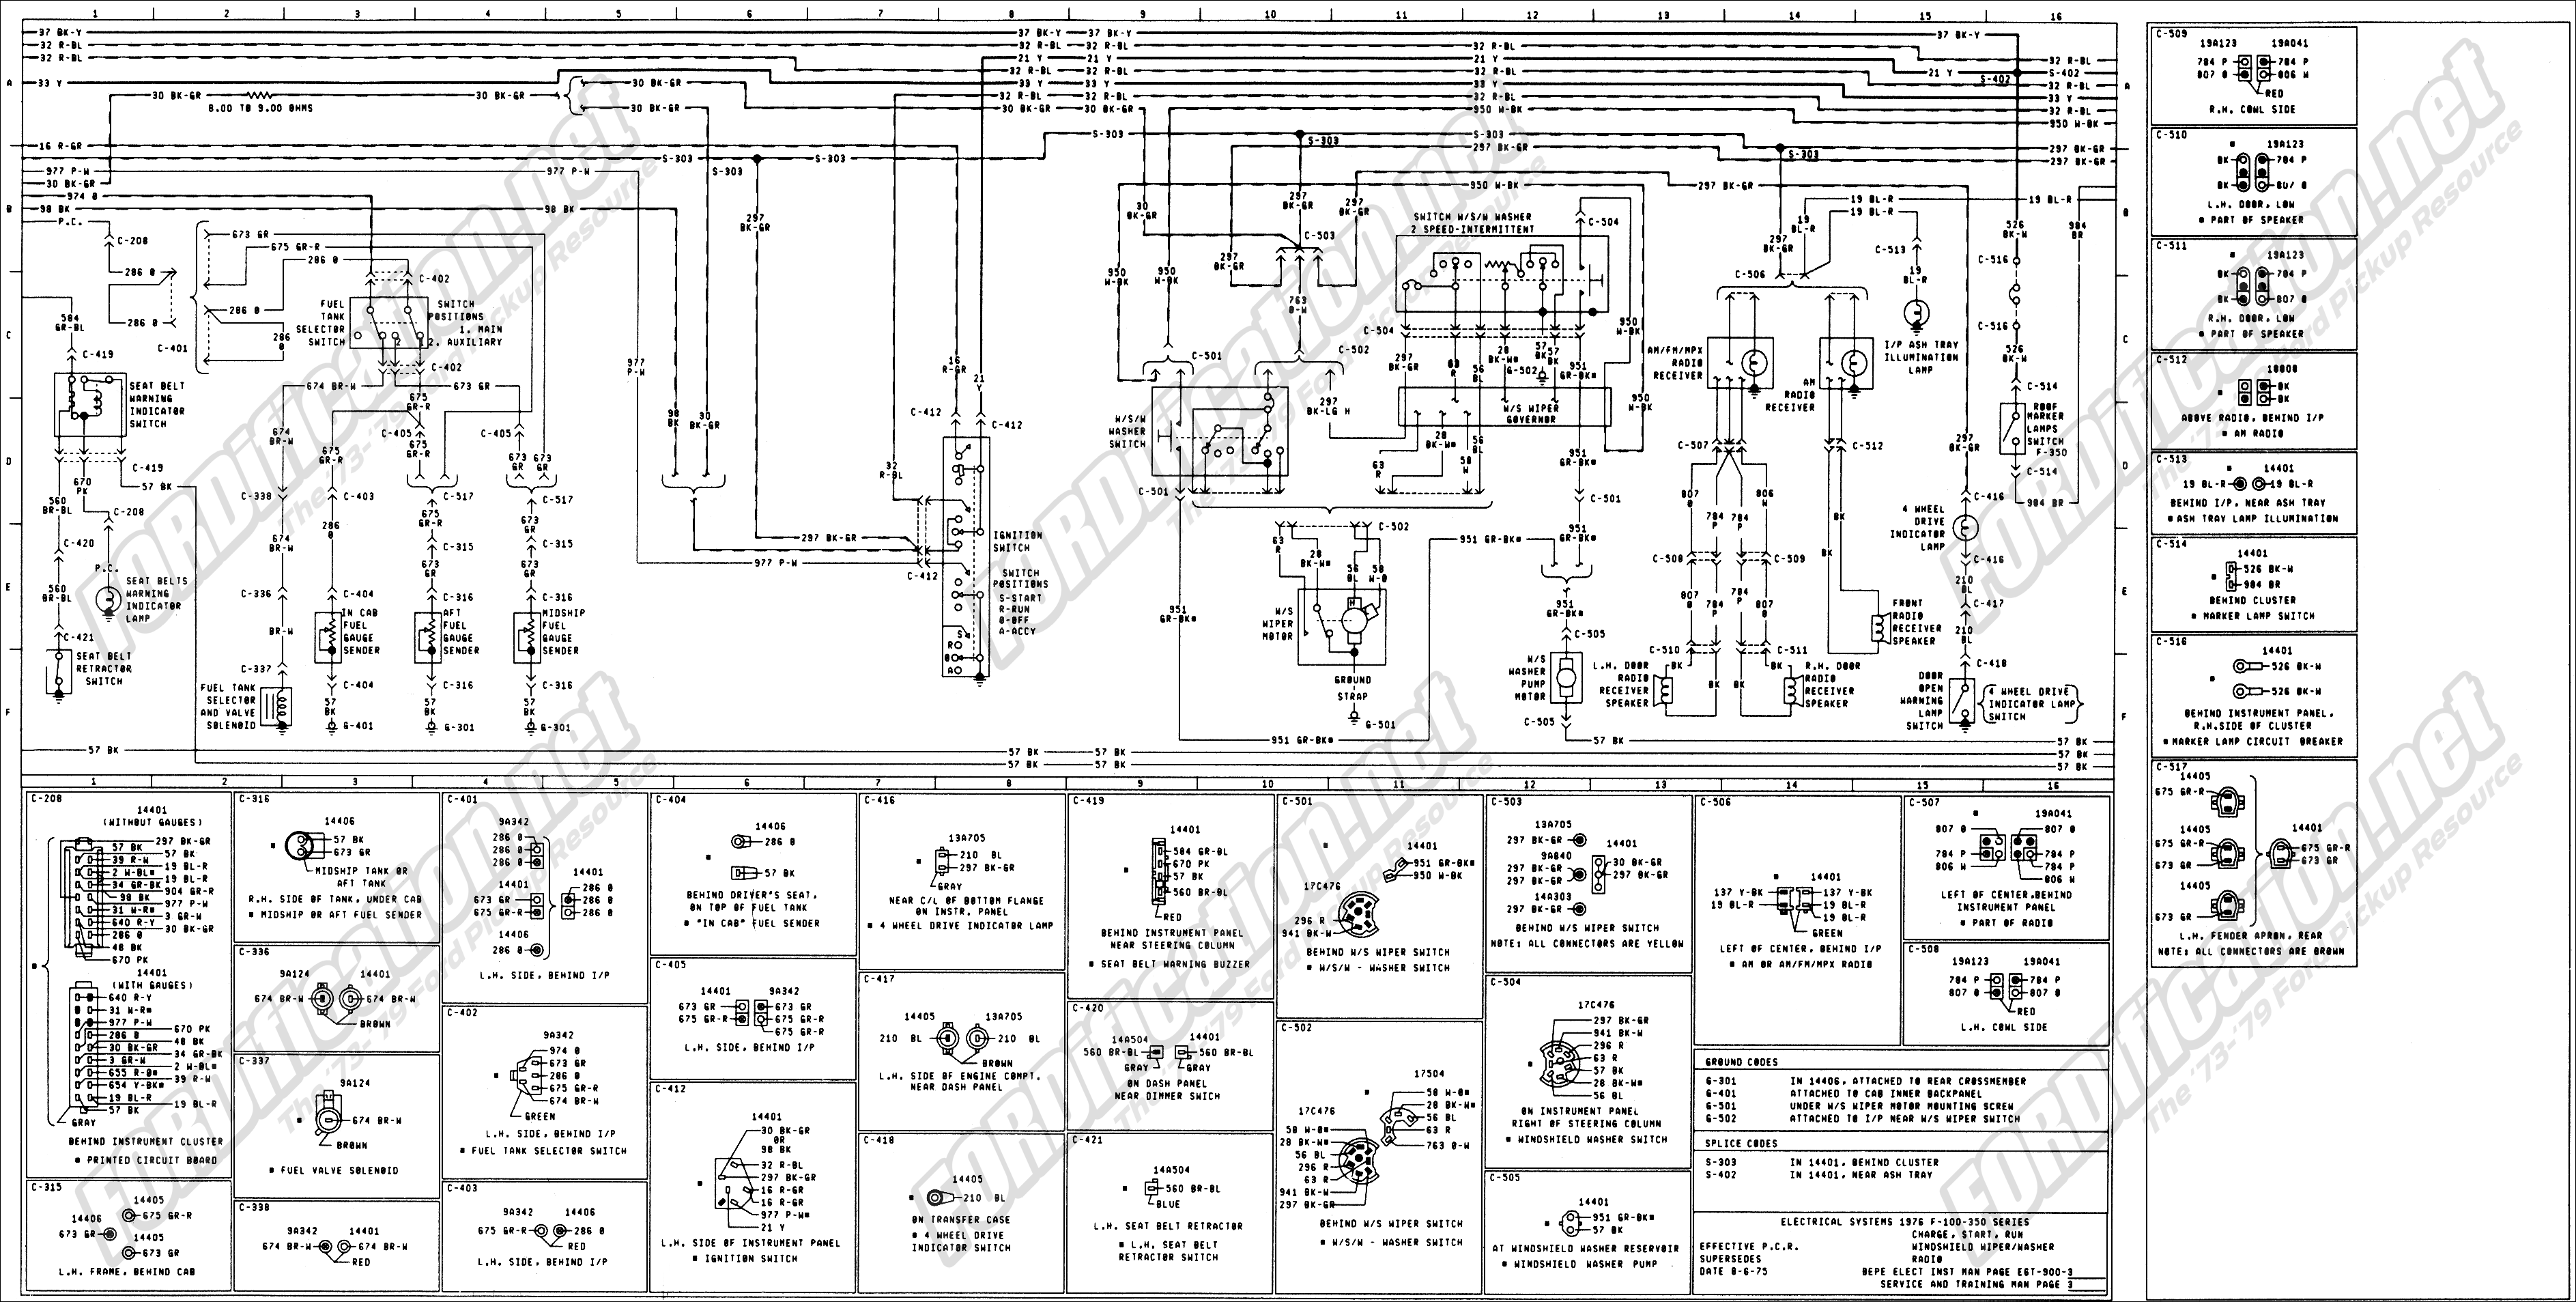 wiring_76master_3of9 1973 1979 ford truck wiring diagrams & schematics fordification net 2011 ford focus wiring diagram at bayanpartner.co